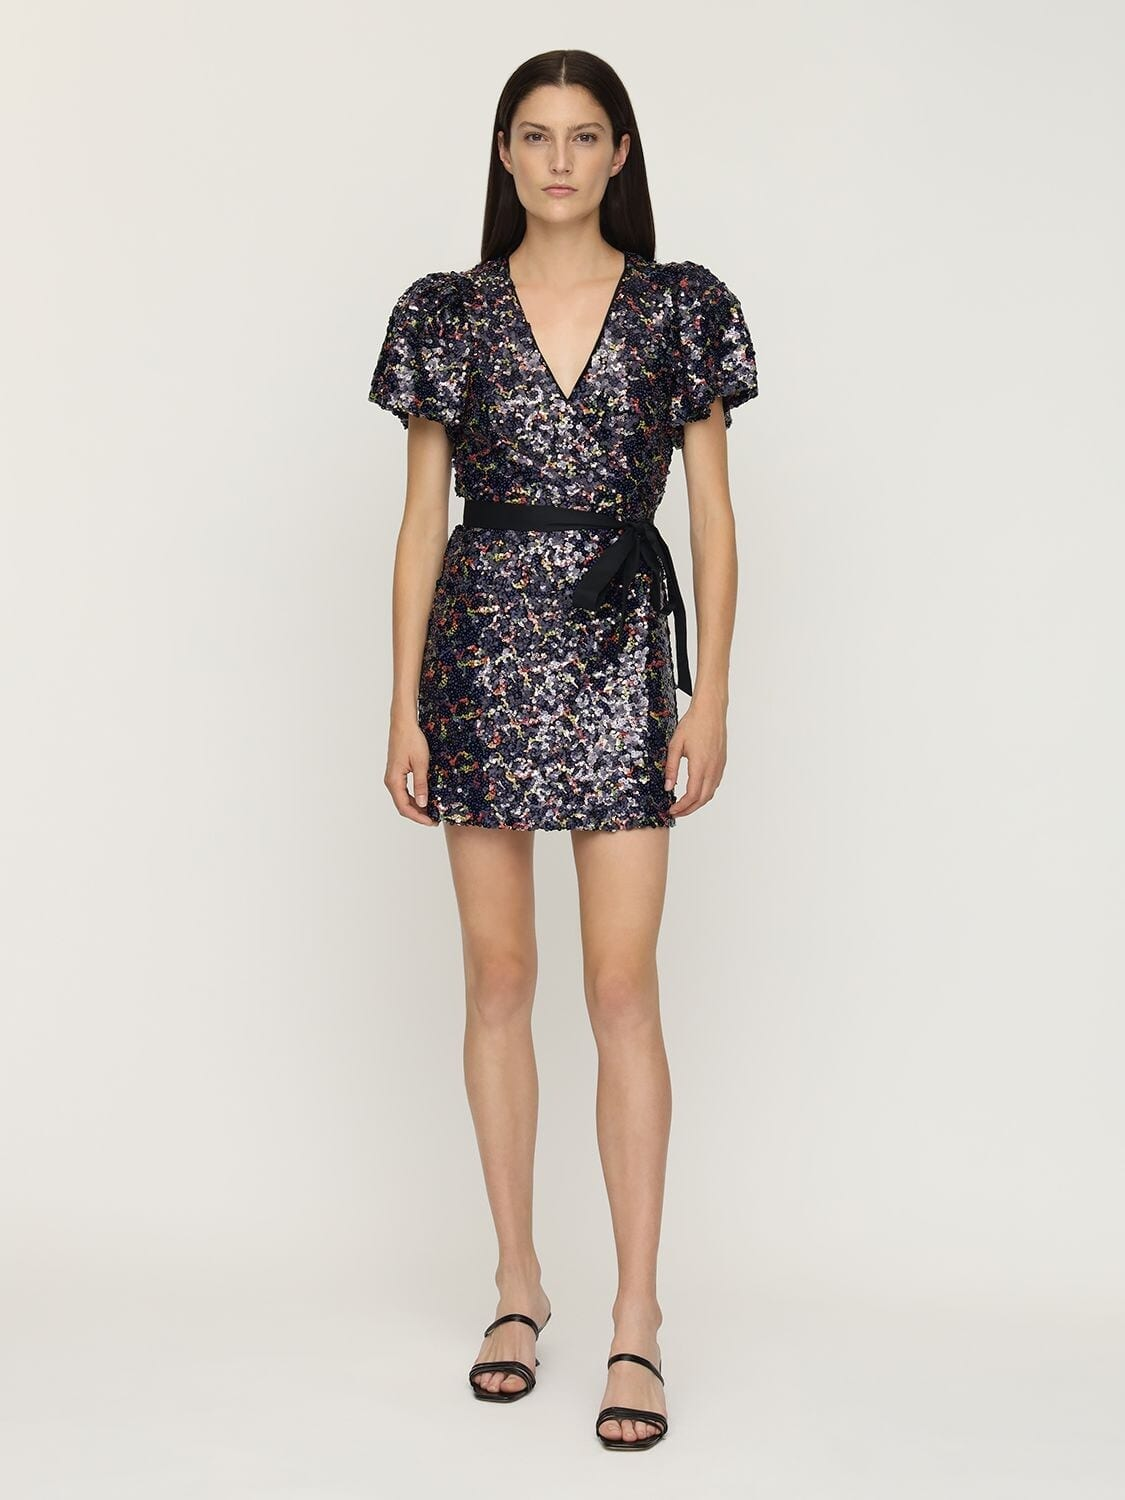 ROTATE Frida Sequins Mini Dress